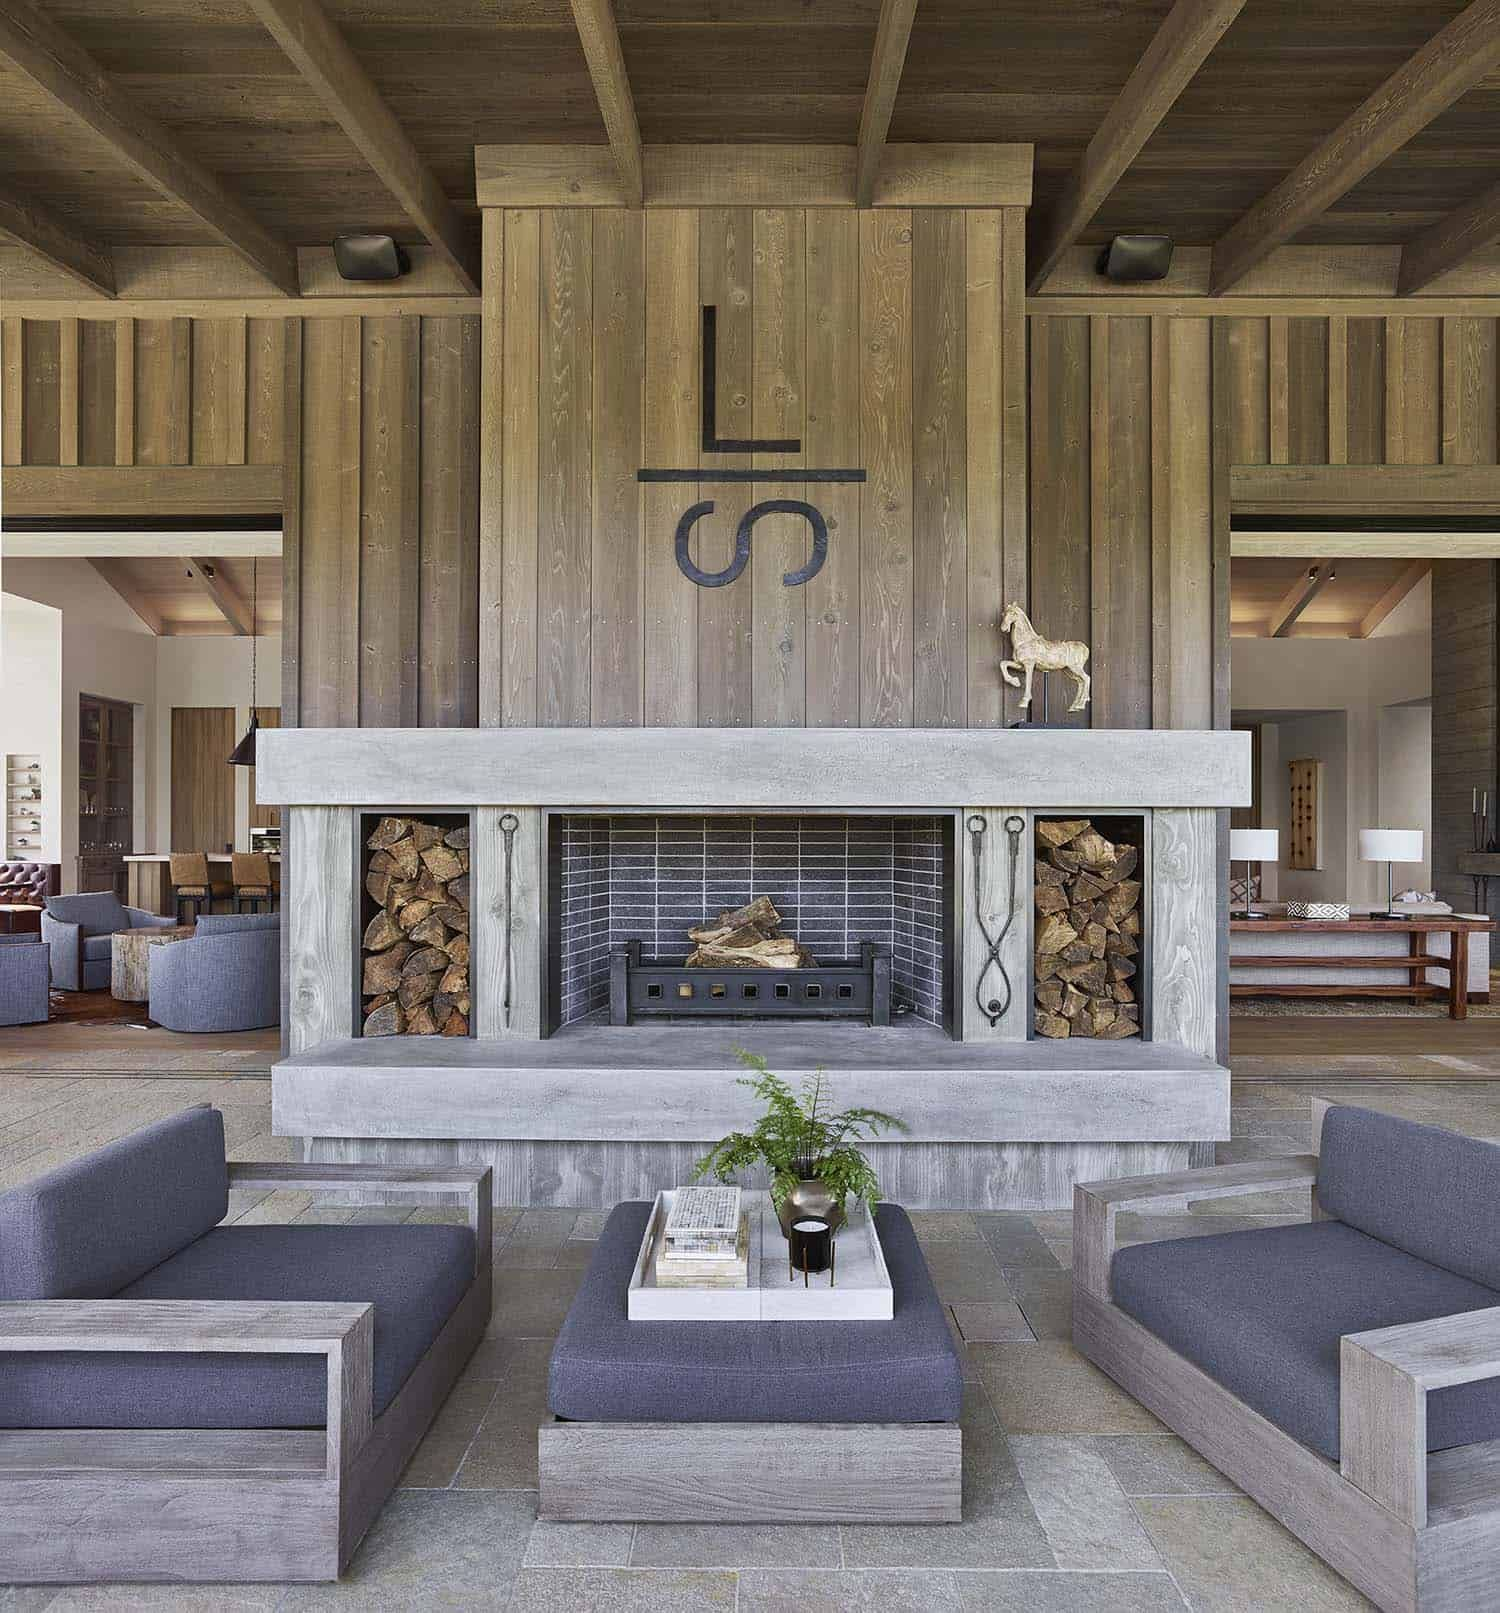 cd751bca14b54d27d74af08d5ea7fa60 Ranch Home Plans With Tours on modular home tours, cottage home tours, victorian home tours,